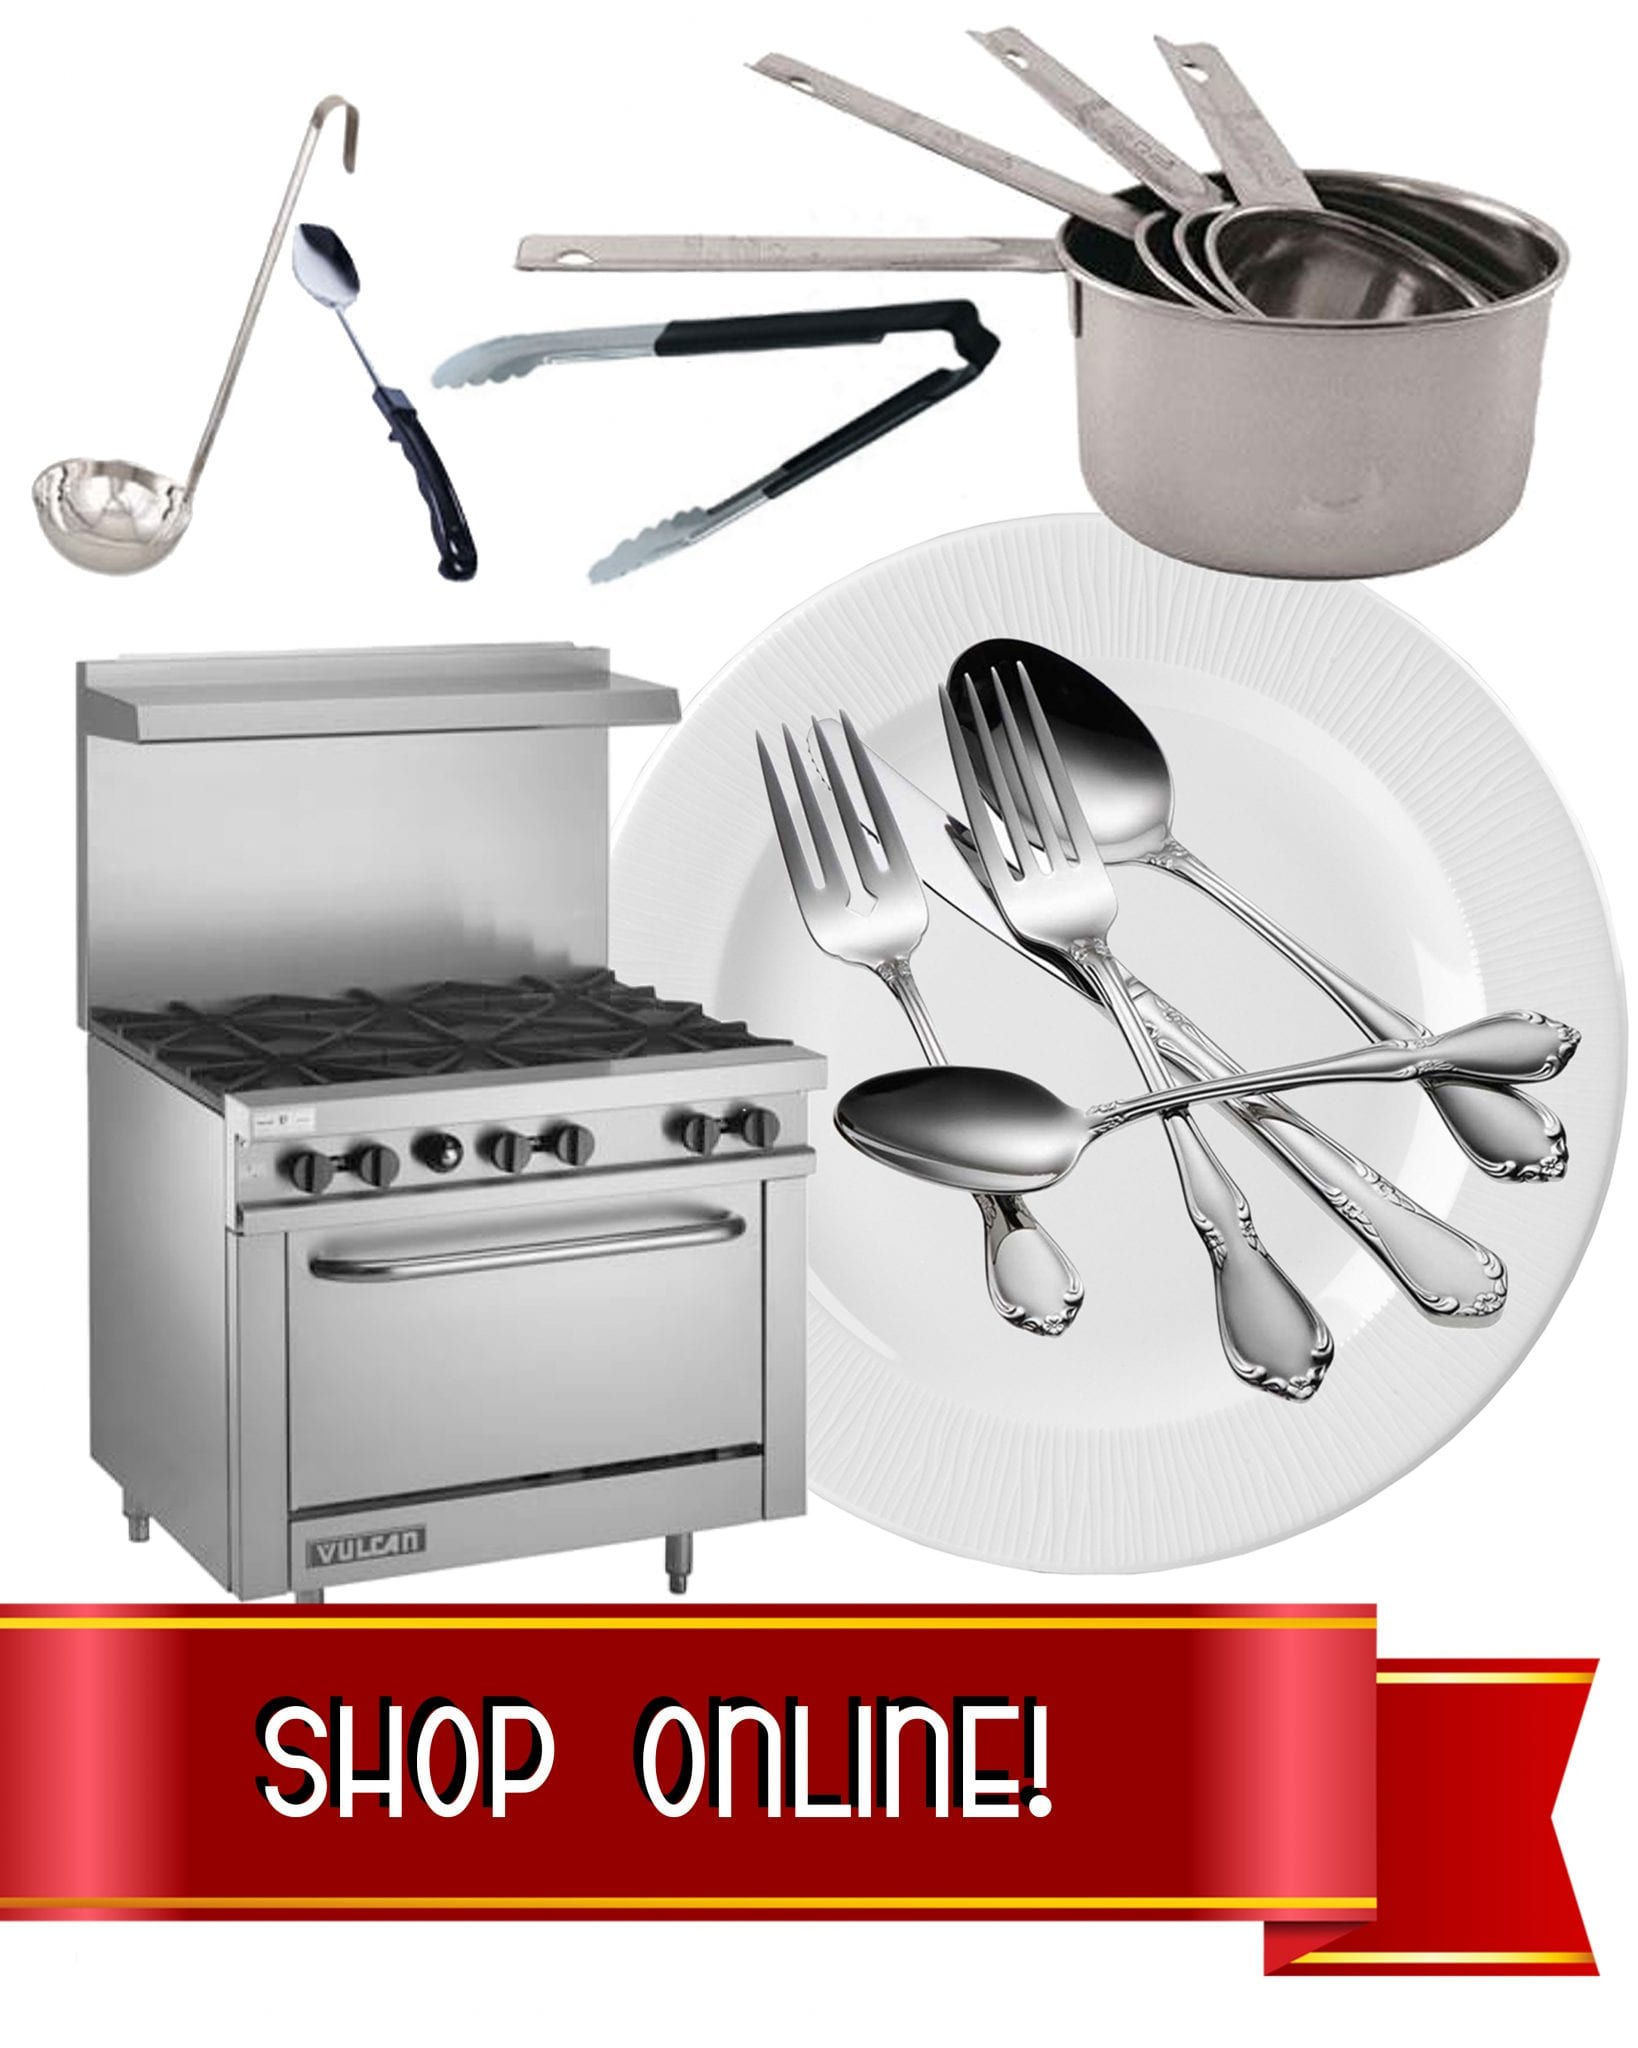 mcl hospitality mcl hospitality restaurant equipment supplies